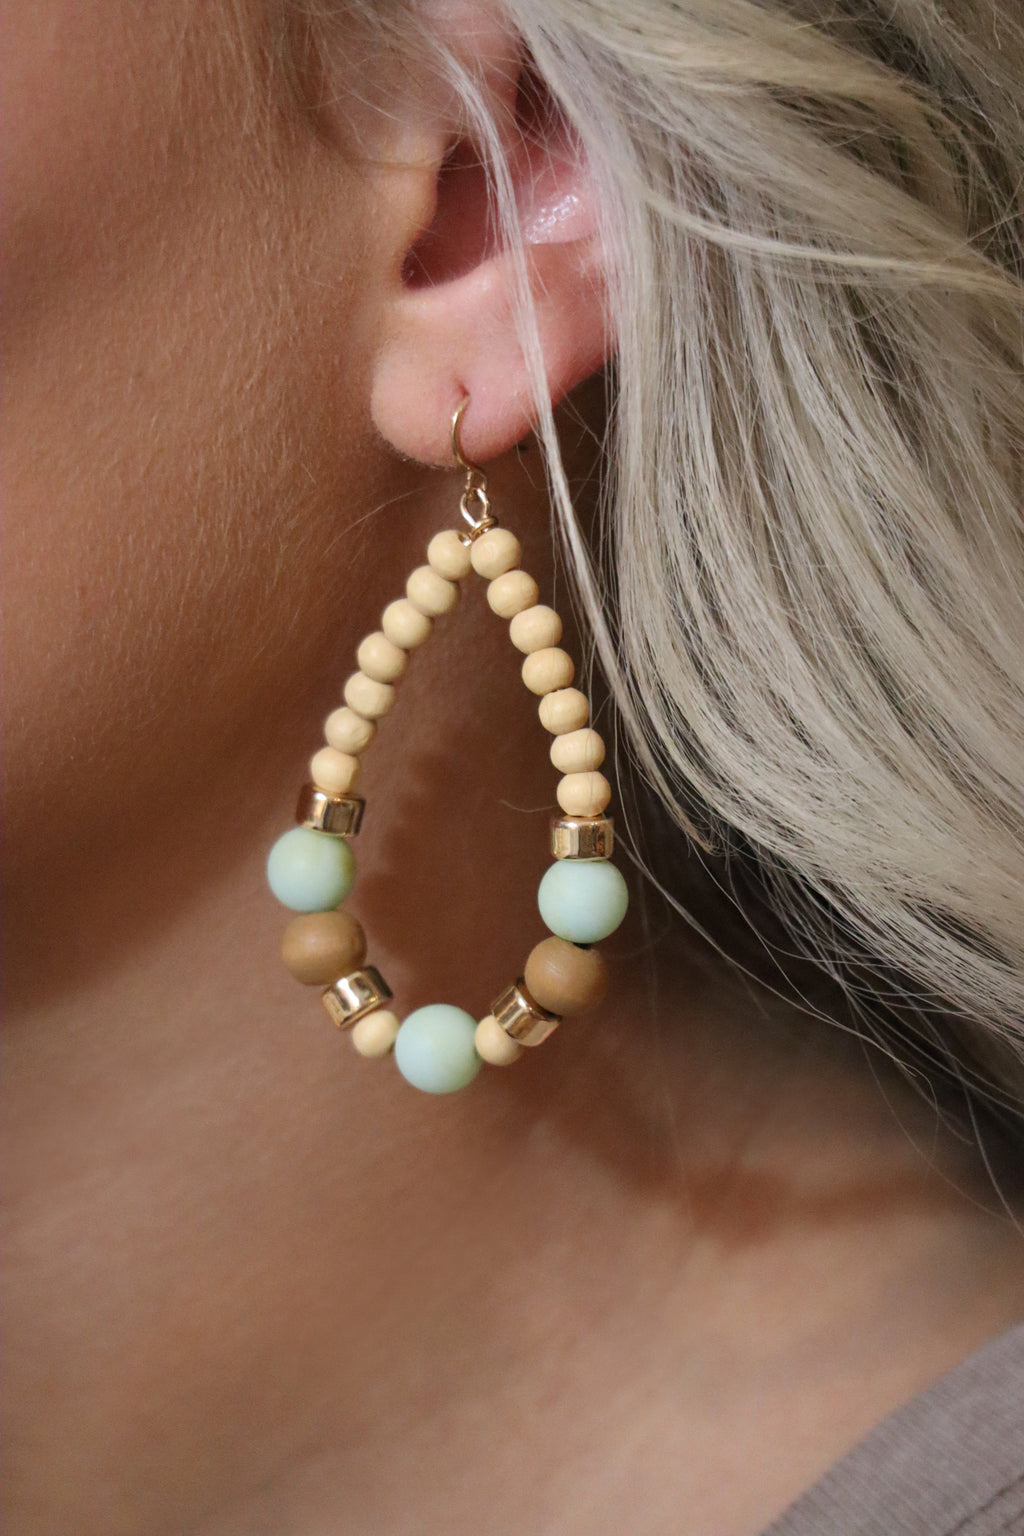 BLAIR'S BOHEMIAM EARRINGS - TAN & TEAL